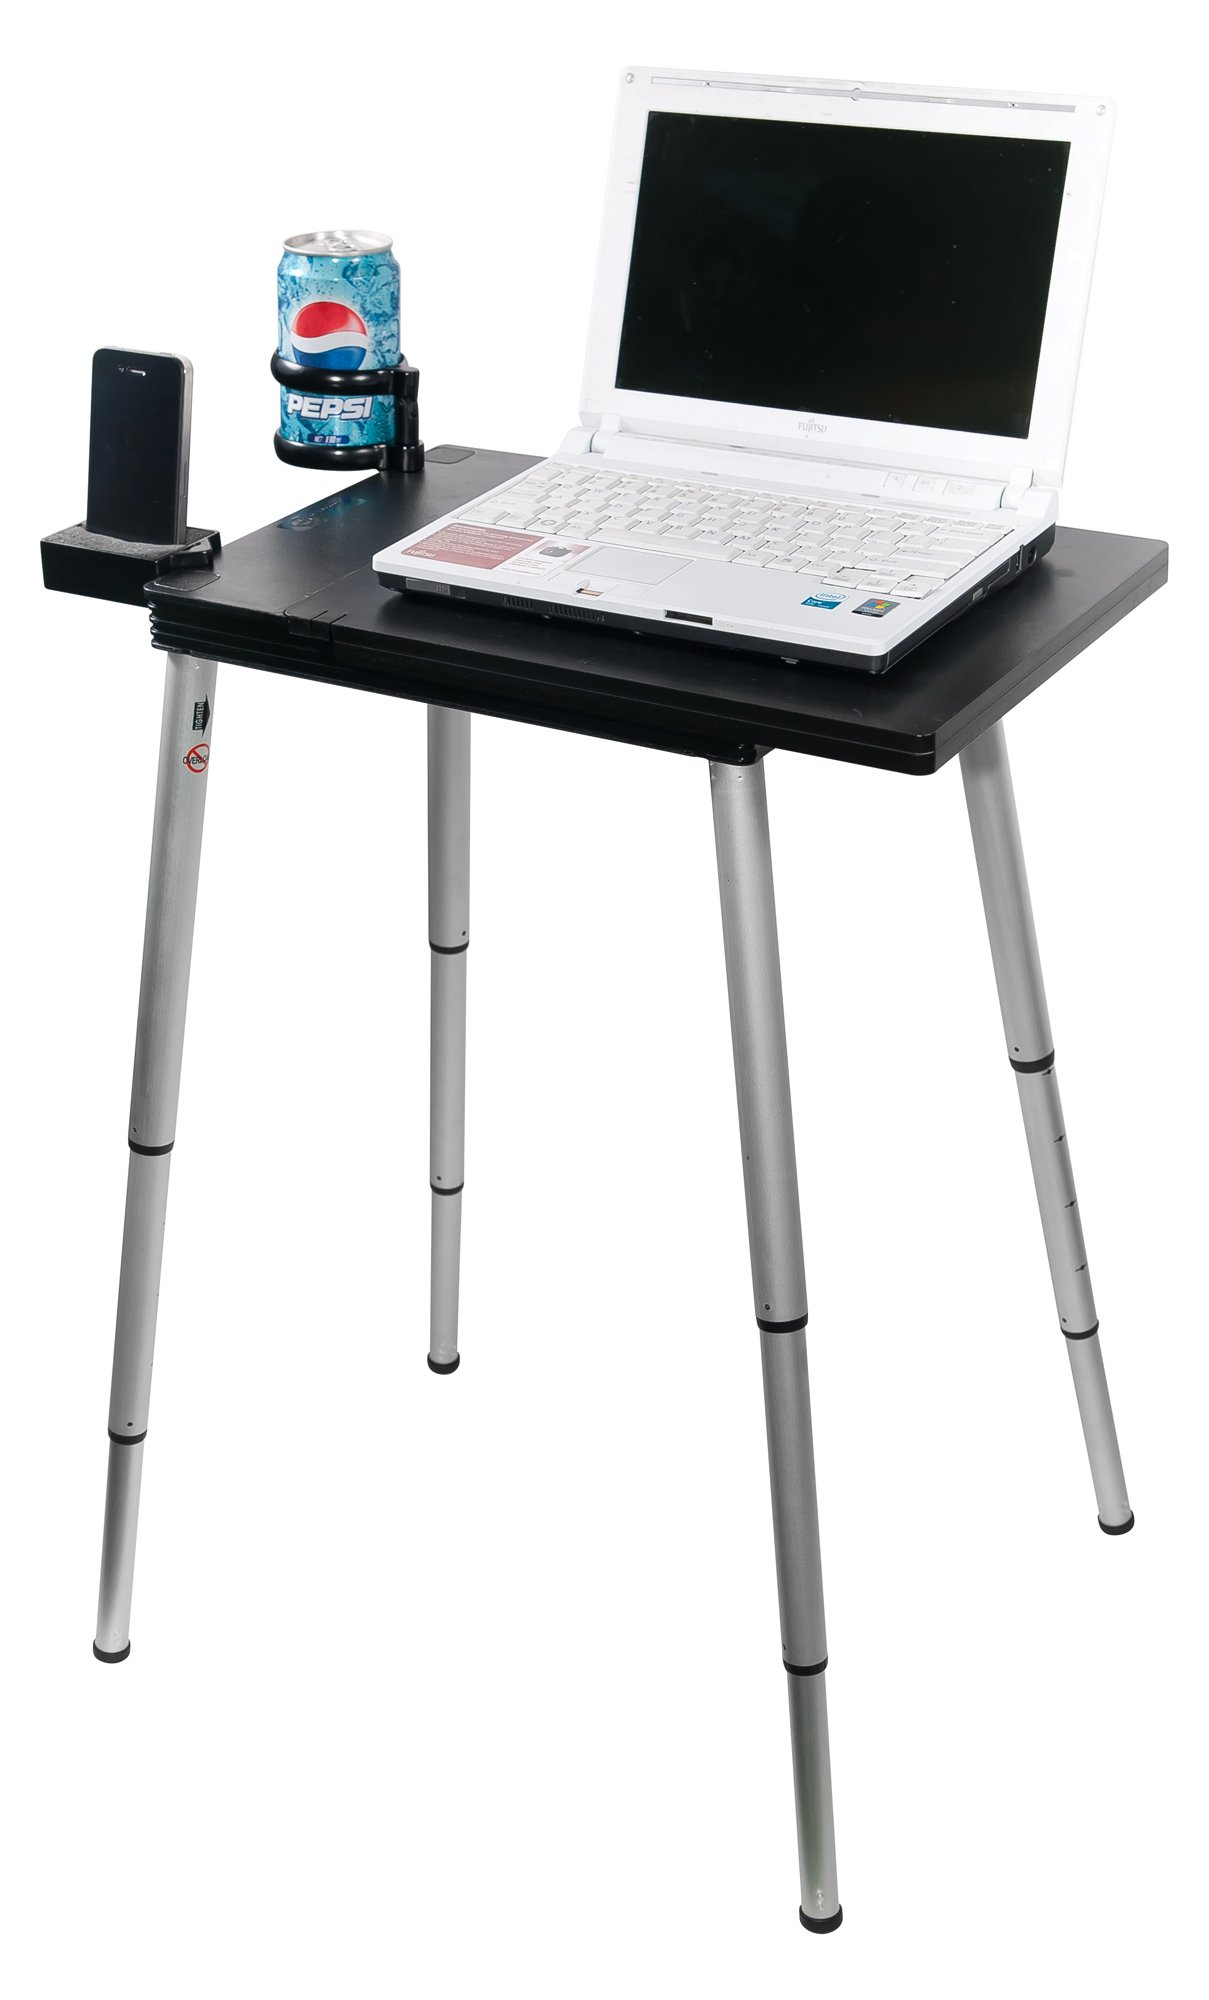 Tabletote Plus Black Portable Compact Lightweight Adjustable Height Laptop Notebook Computer Stand by Tabletote